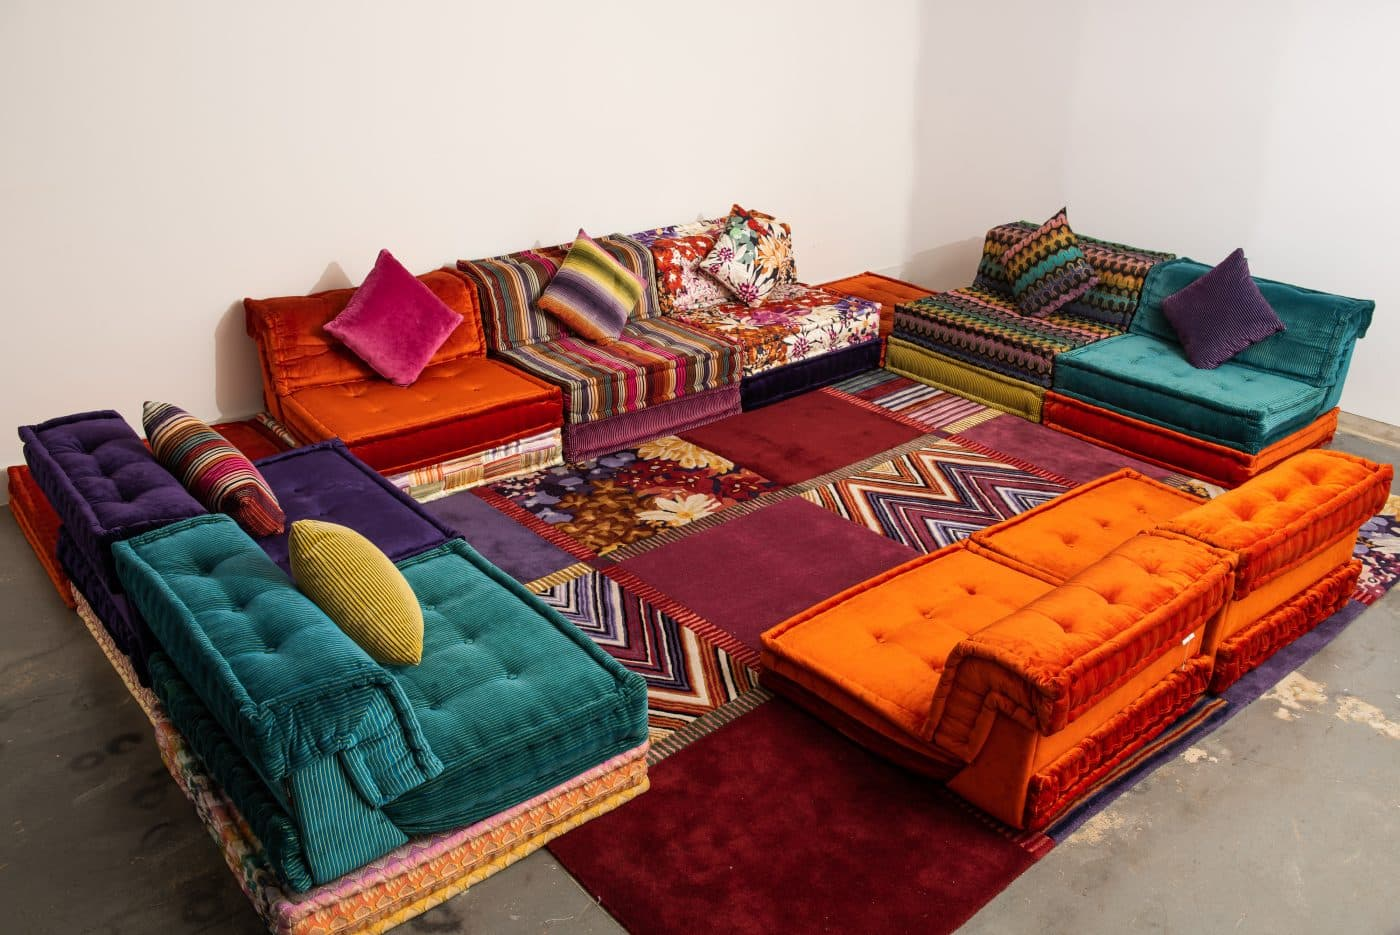 The Missoni for Roche Bobois Mah Jong living room set, offered by Automaton